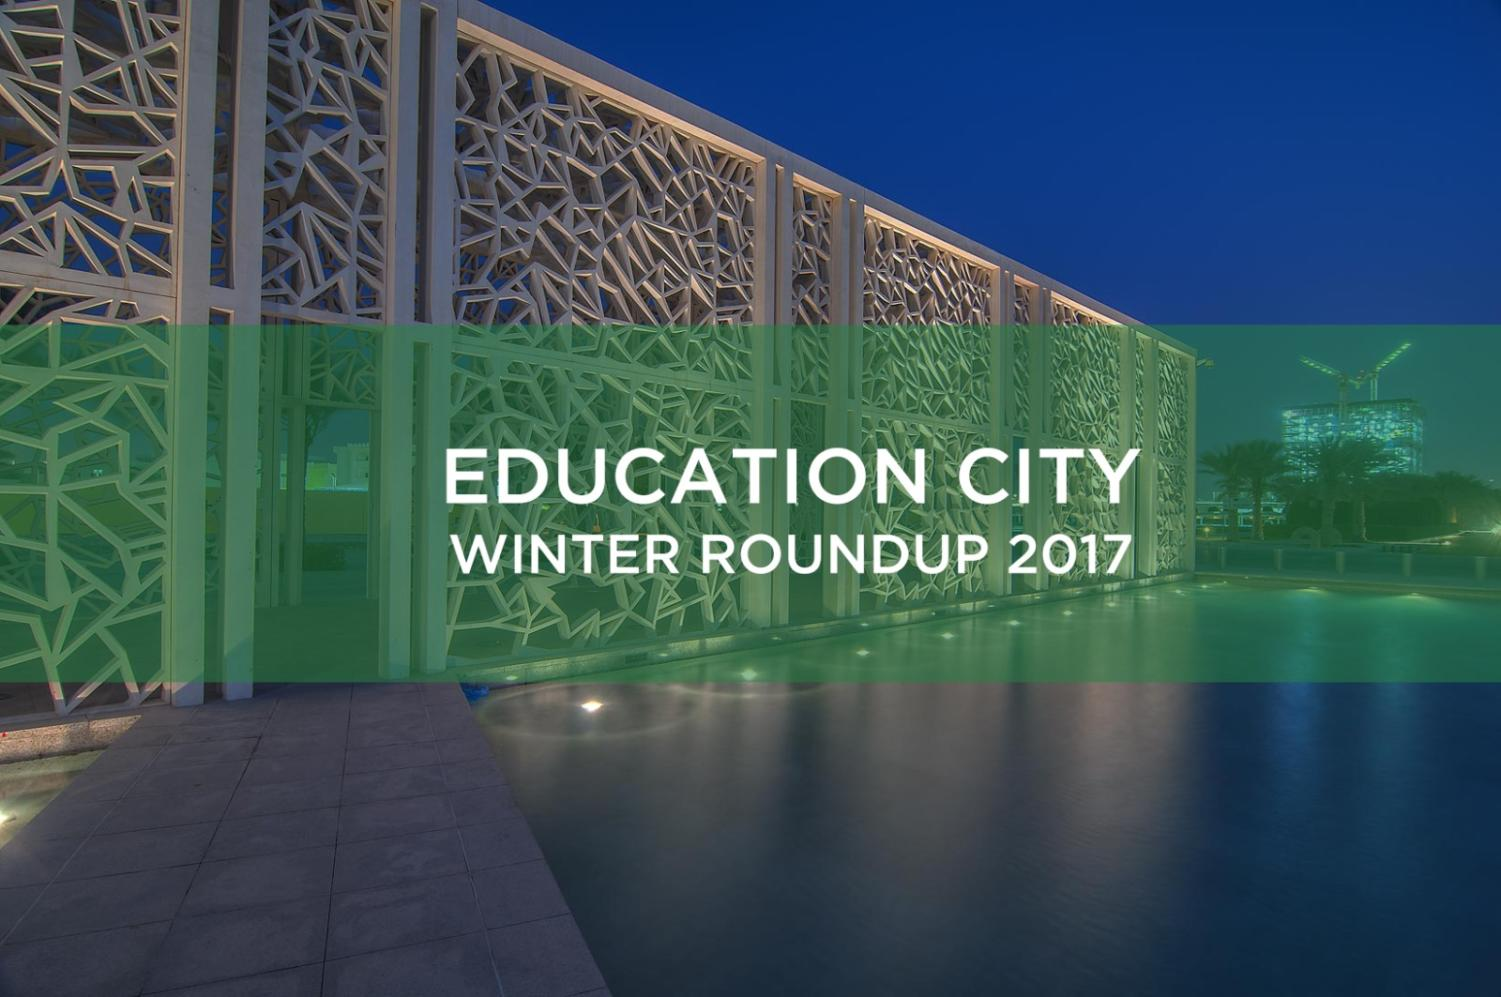 Education City winter roundup 2017 – The Daily Q